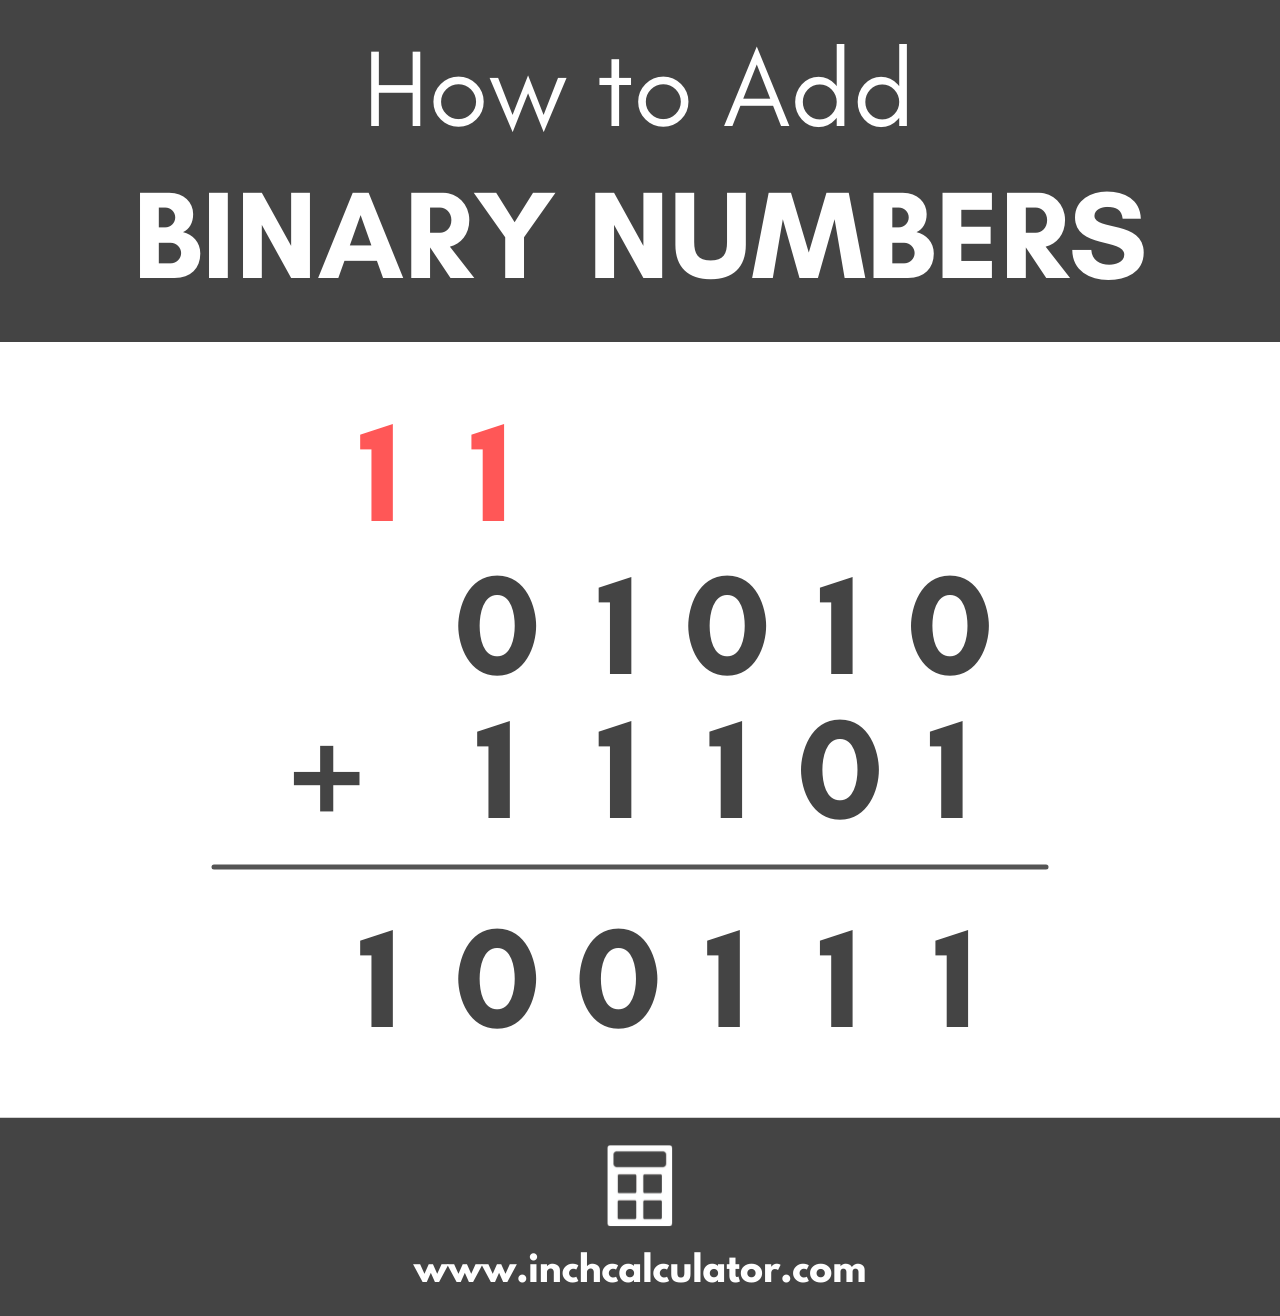 graphic showing how to add binary numbers together